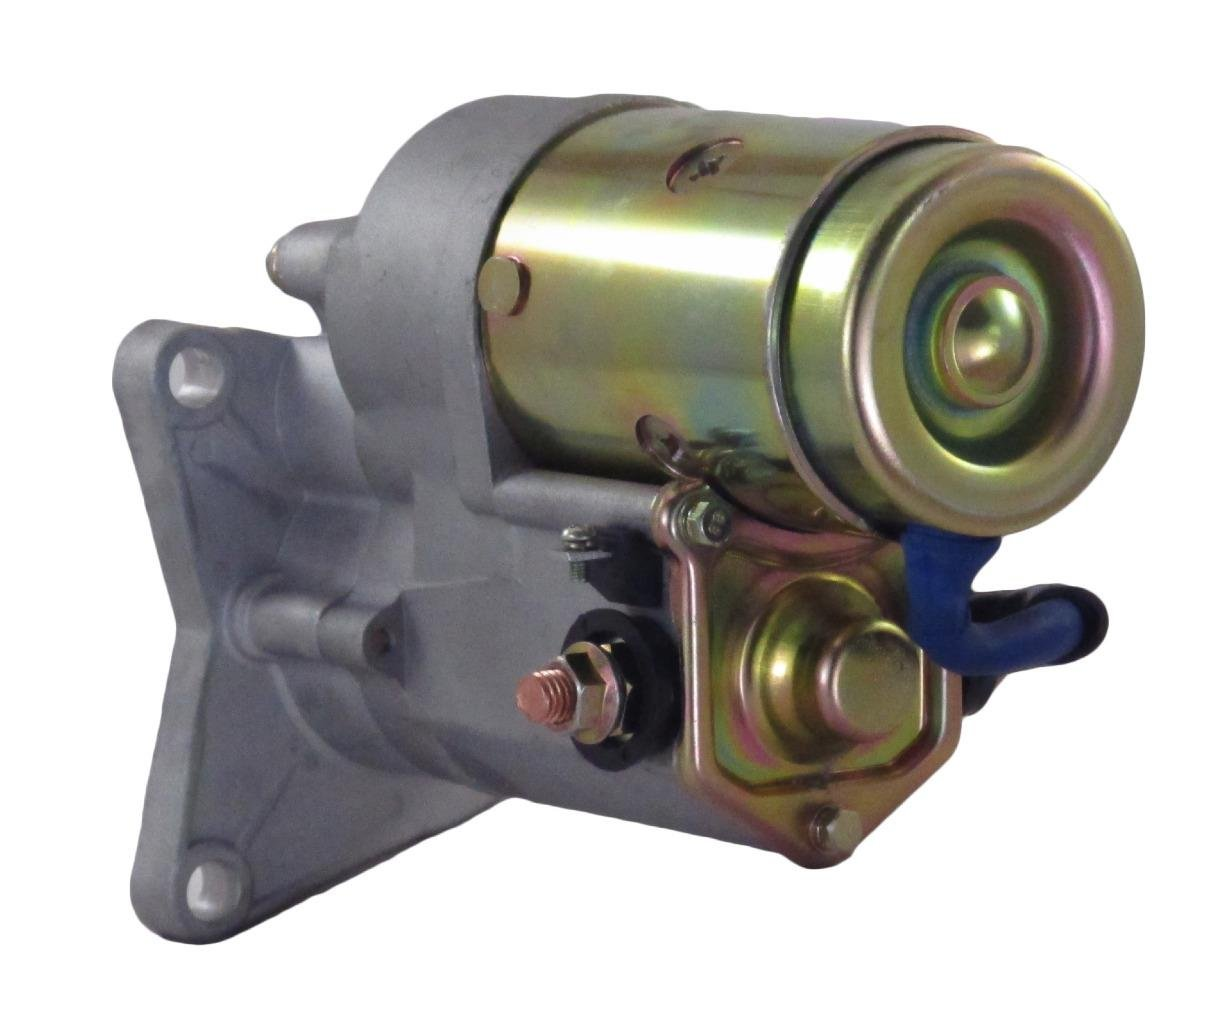 Amazon.com: NEW GEAR REDUCTION STARTER FITS FORD FARM TRACTOR 5000 5100  5200 5340 5600 5610 5900: Automotive